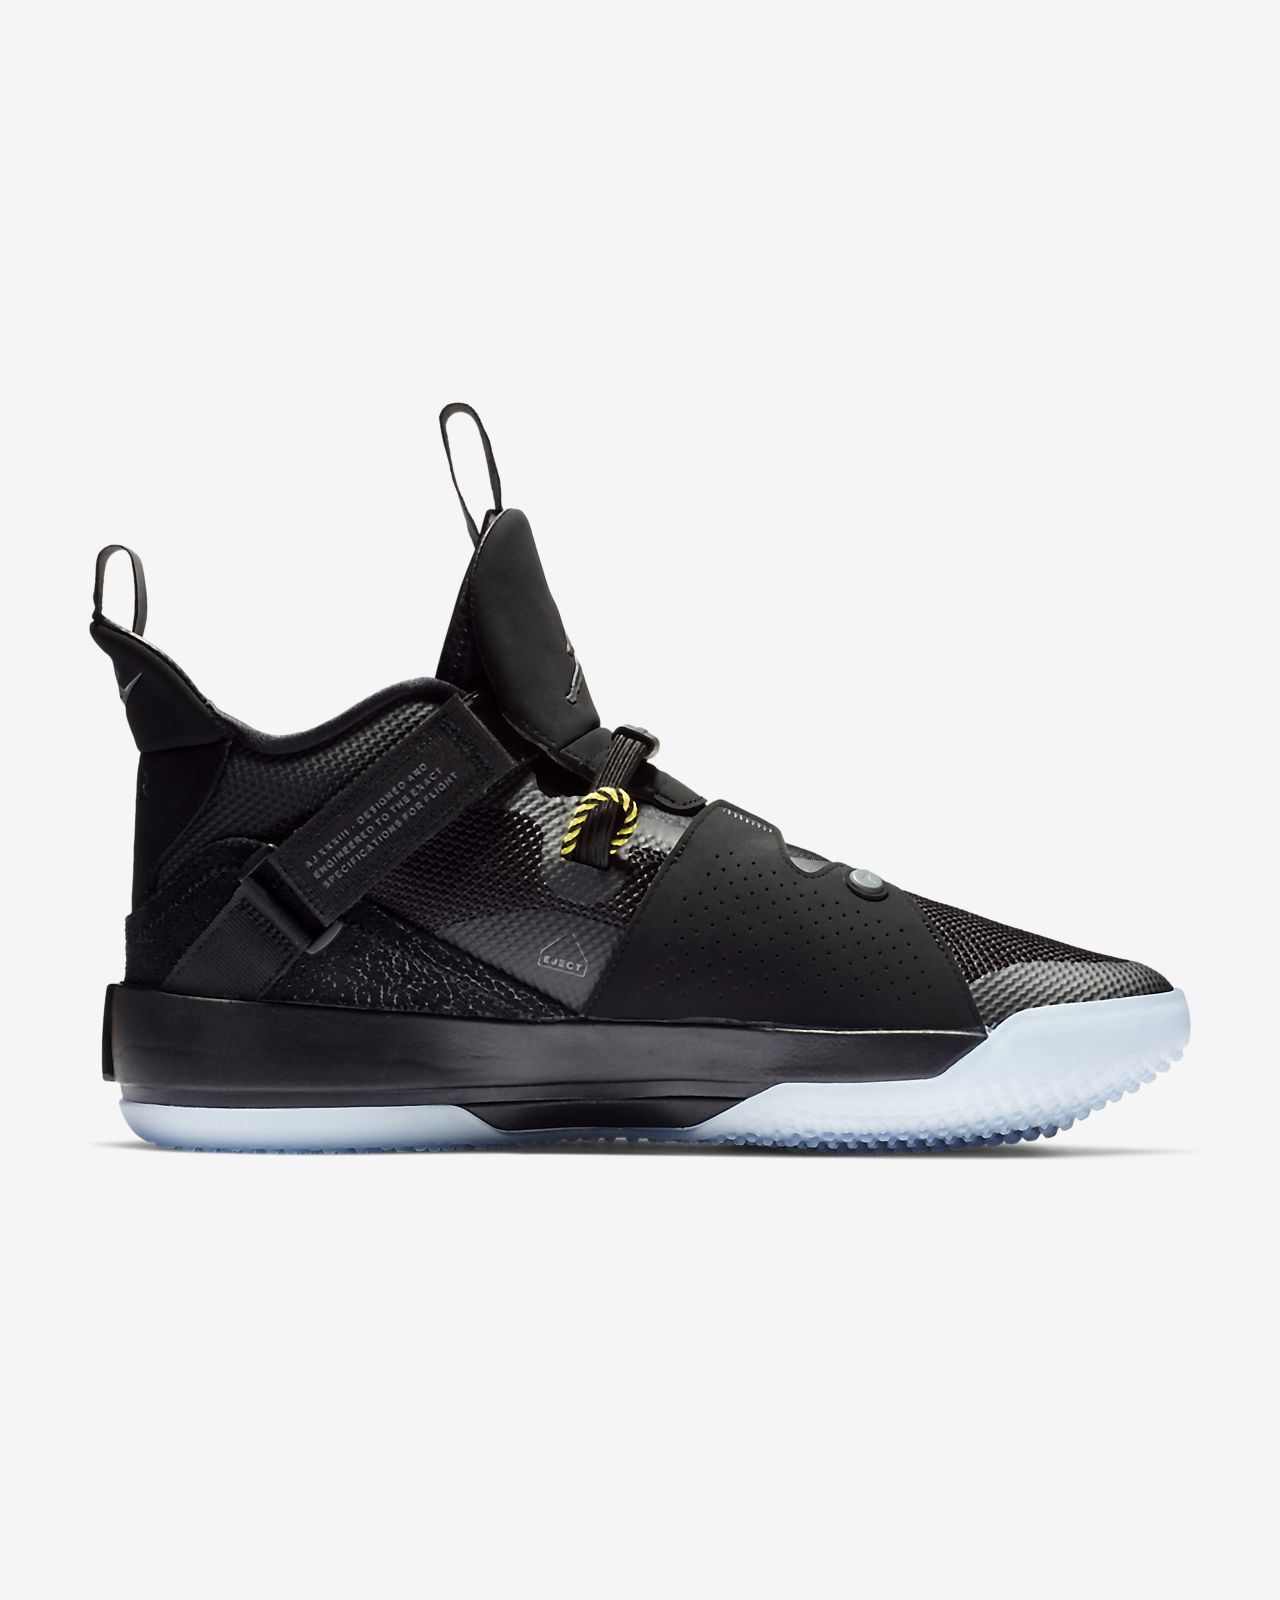 Air Jordan XXXIII Men s Basketball Shoe. Nike.com BE a1a108a674b40